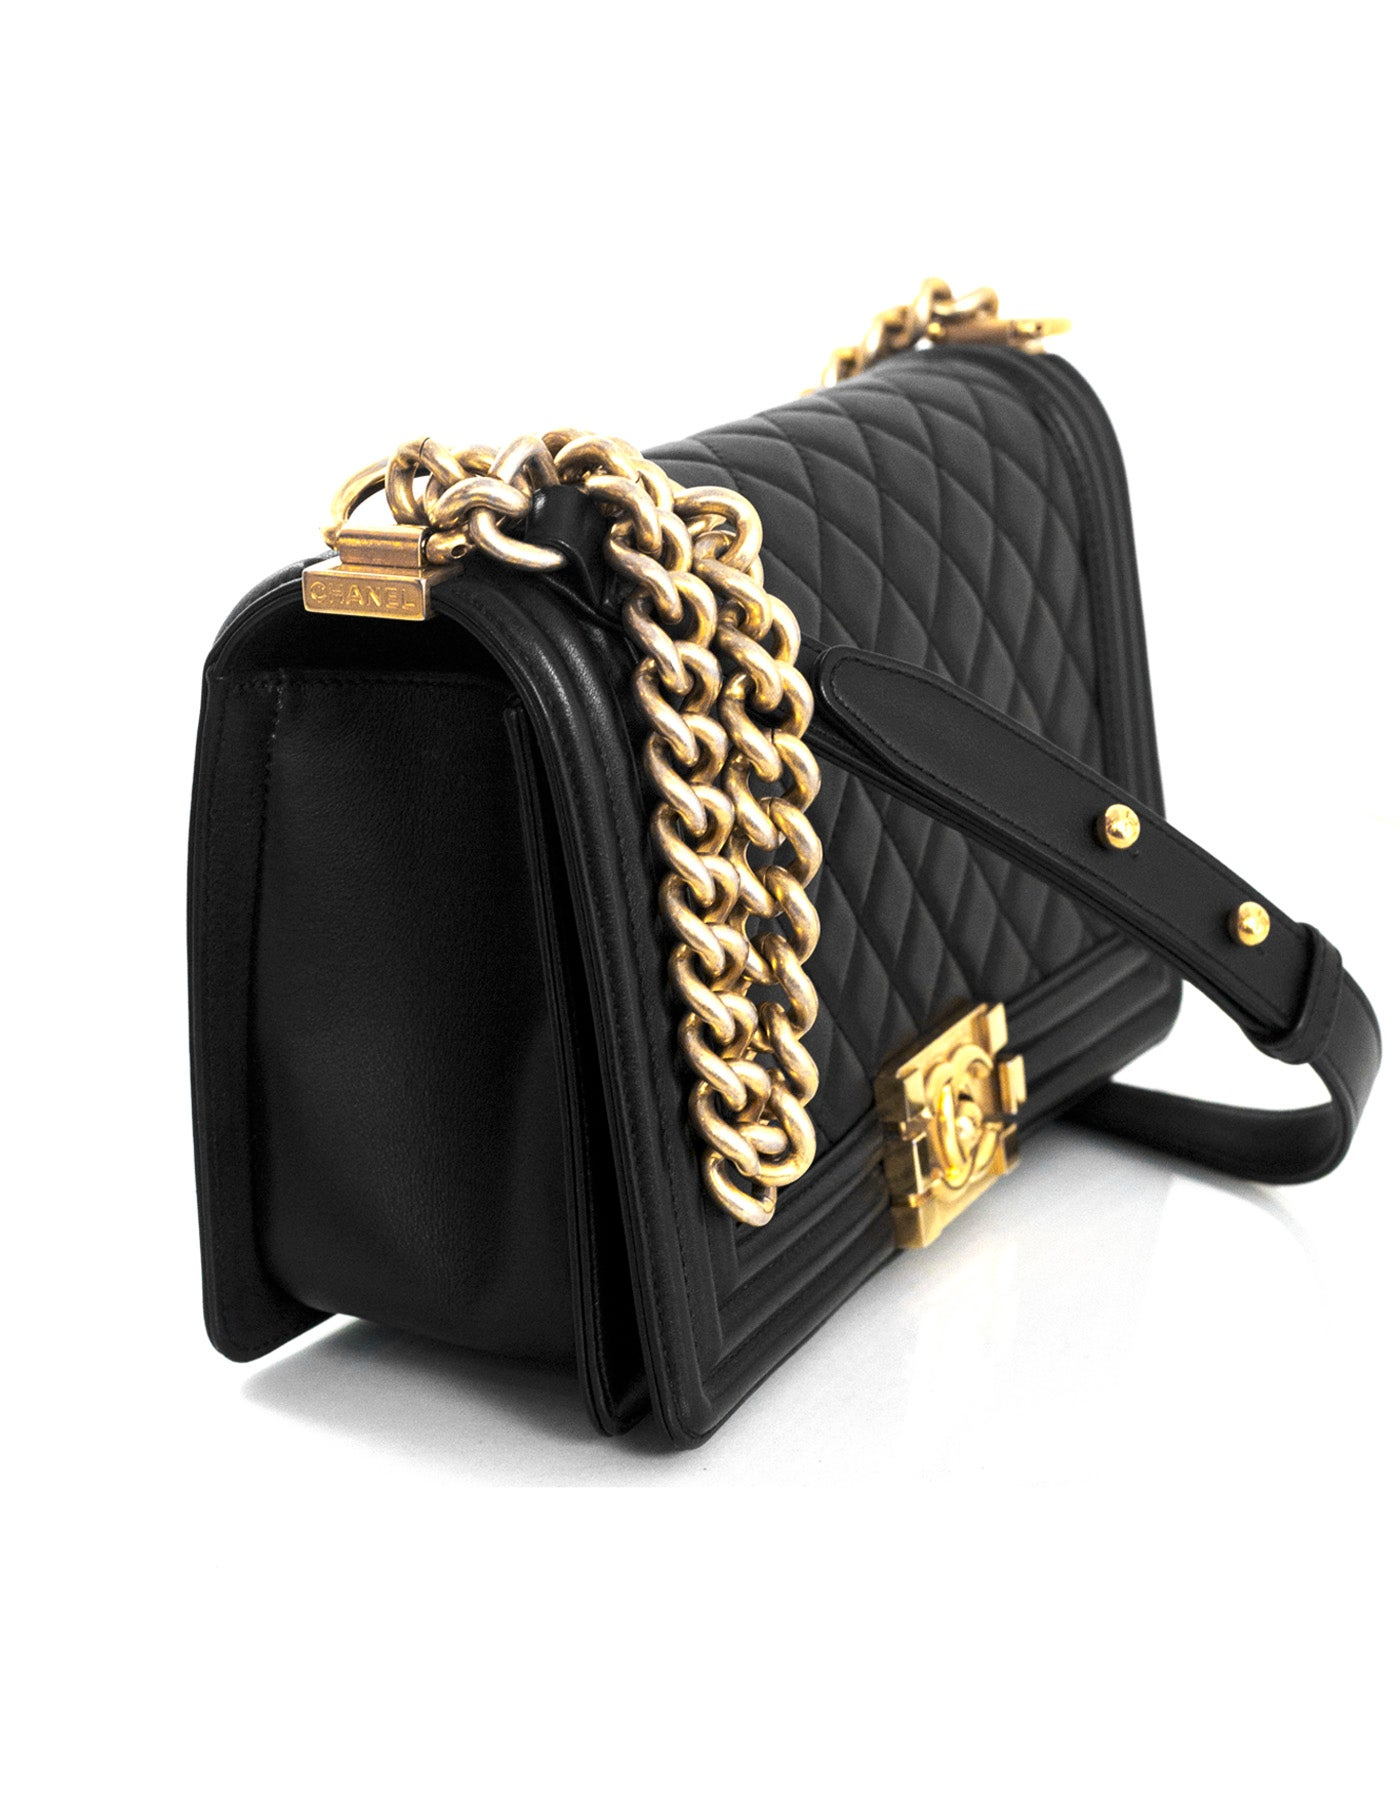 ac74b07d82e4 Chanel Black Lambskin Leather Old Medium Boy Bag with GHW For Sale at  1stdibs